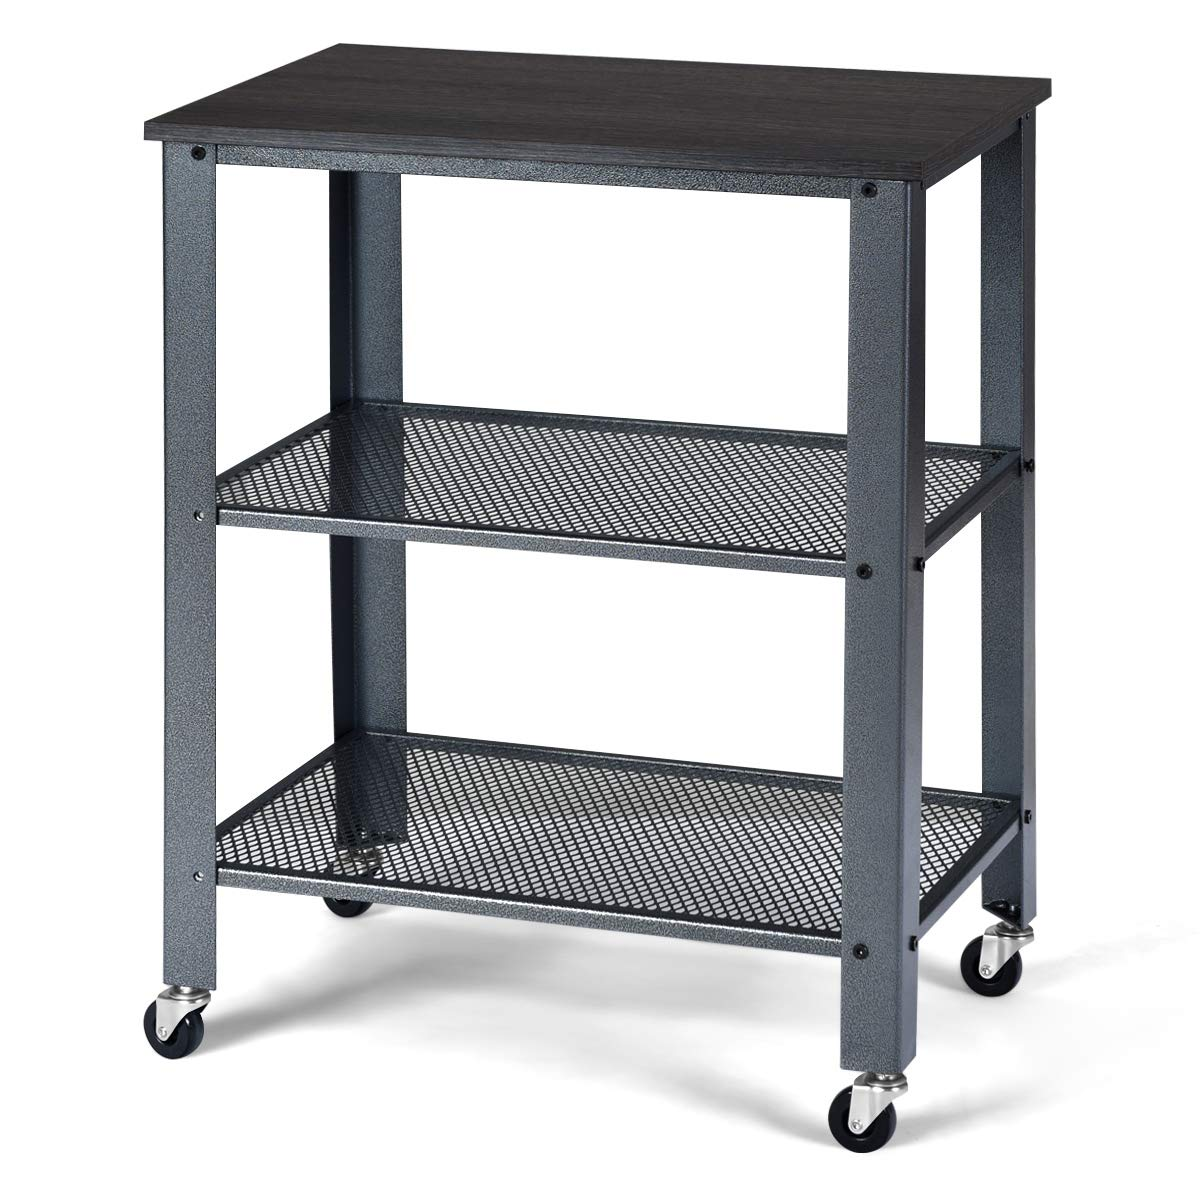 Giantex Microwave Cart Wooden 3-Tier W/Storage Shelf and Rolling Casters, Industrial Style Metal Frame for Kitchen, Living Room Accent Furniture for Living Room Rolling Serving Cart (Gray)